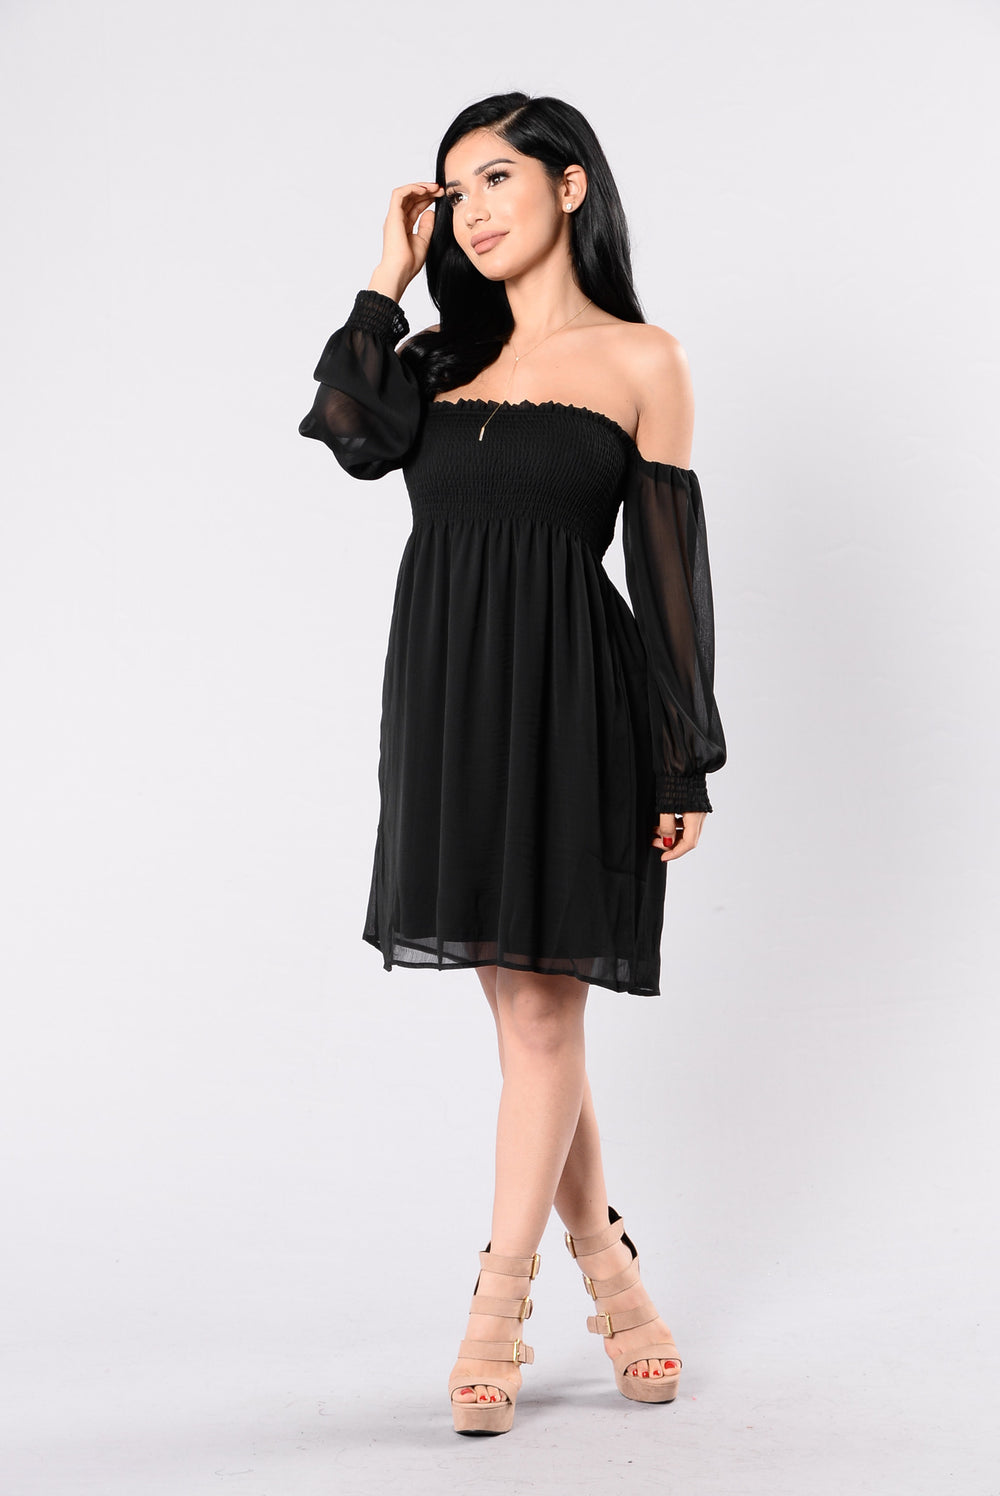 See You There Dress - Black